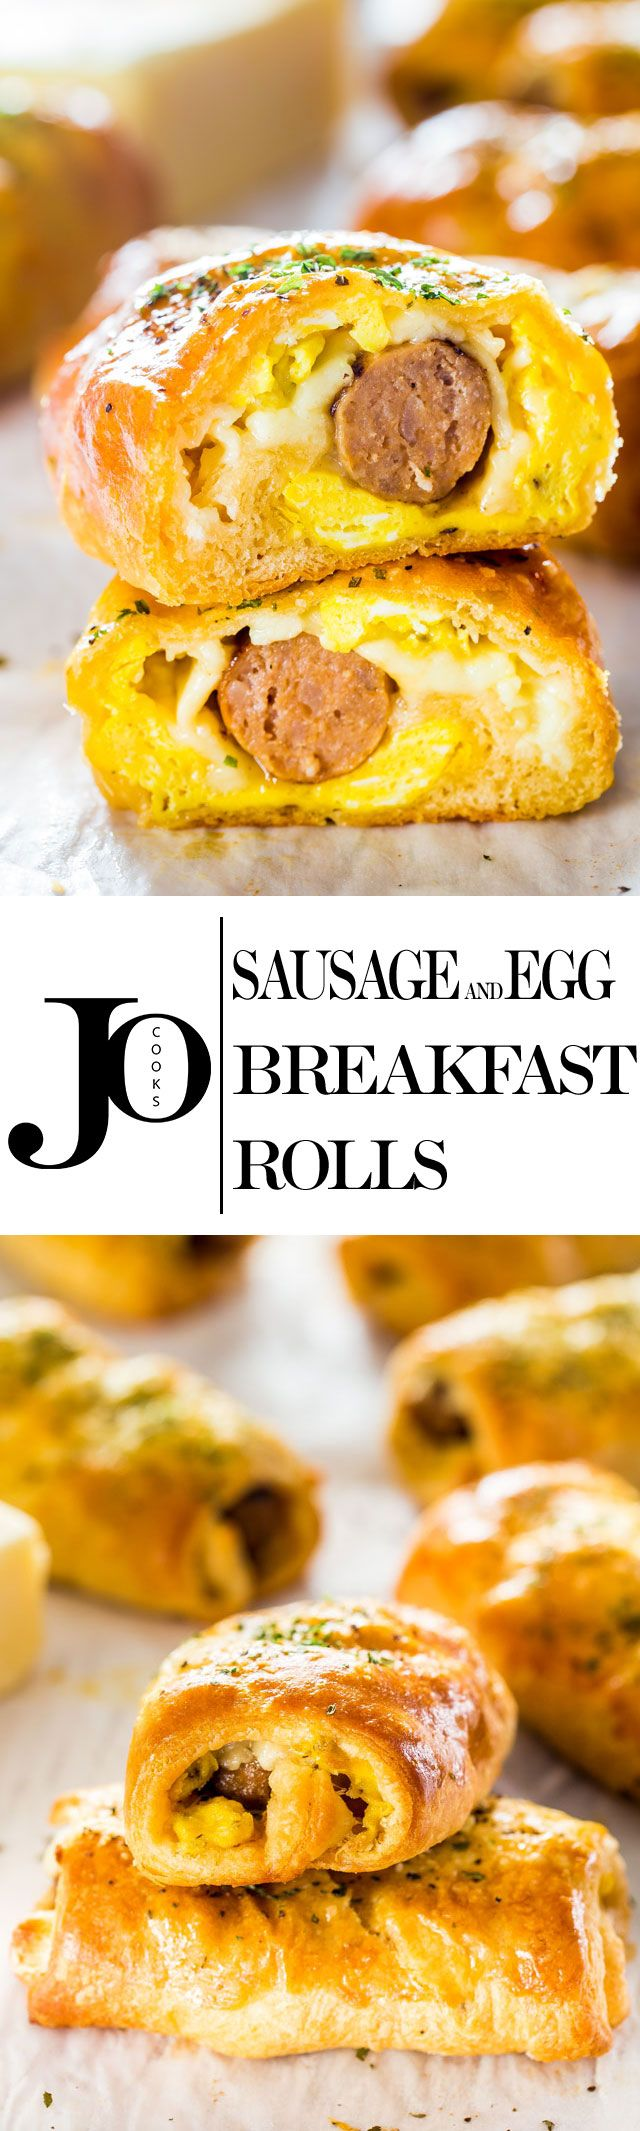 Sausage and Egg Breakfast Rolls - easy and quick to make grab-and-go-breakfast. Turkey breakfast sausages wrapped in crescent rolls with scrambled eggs and cheese. (Crescent Roll Breakfast Recipes)